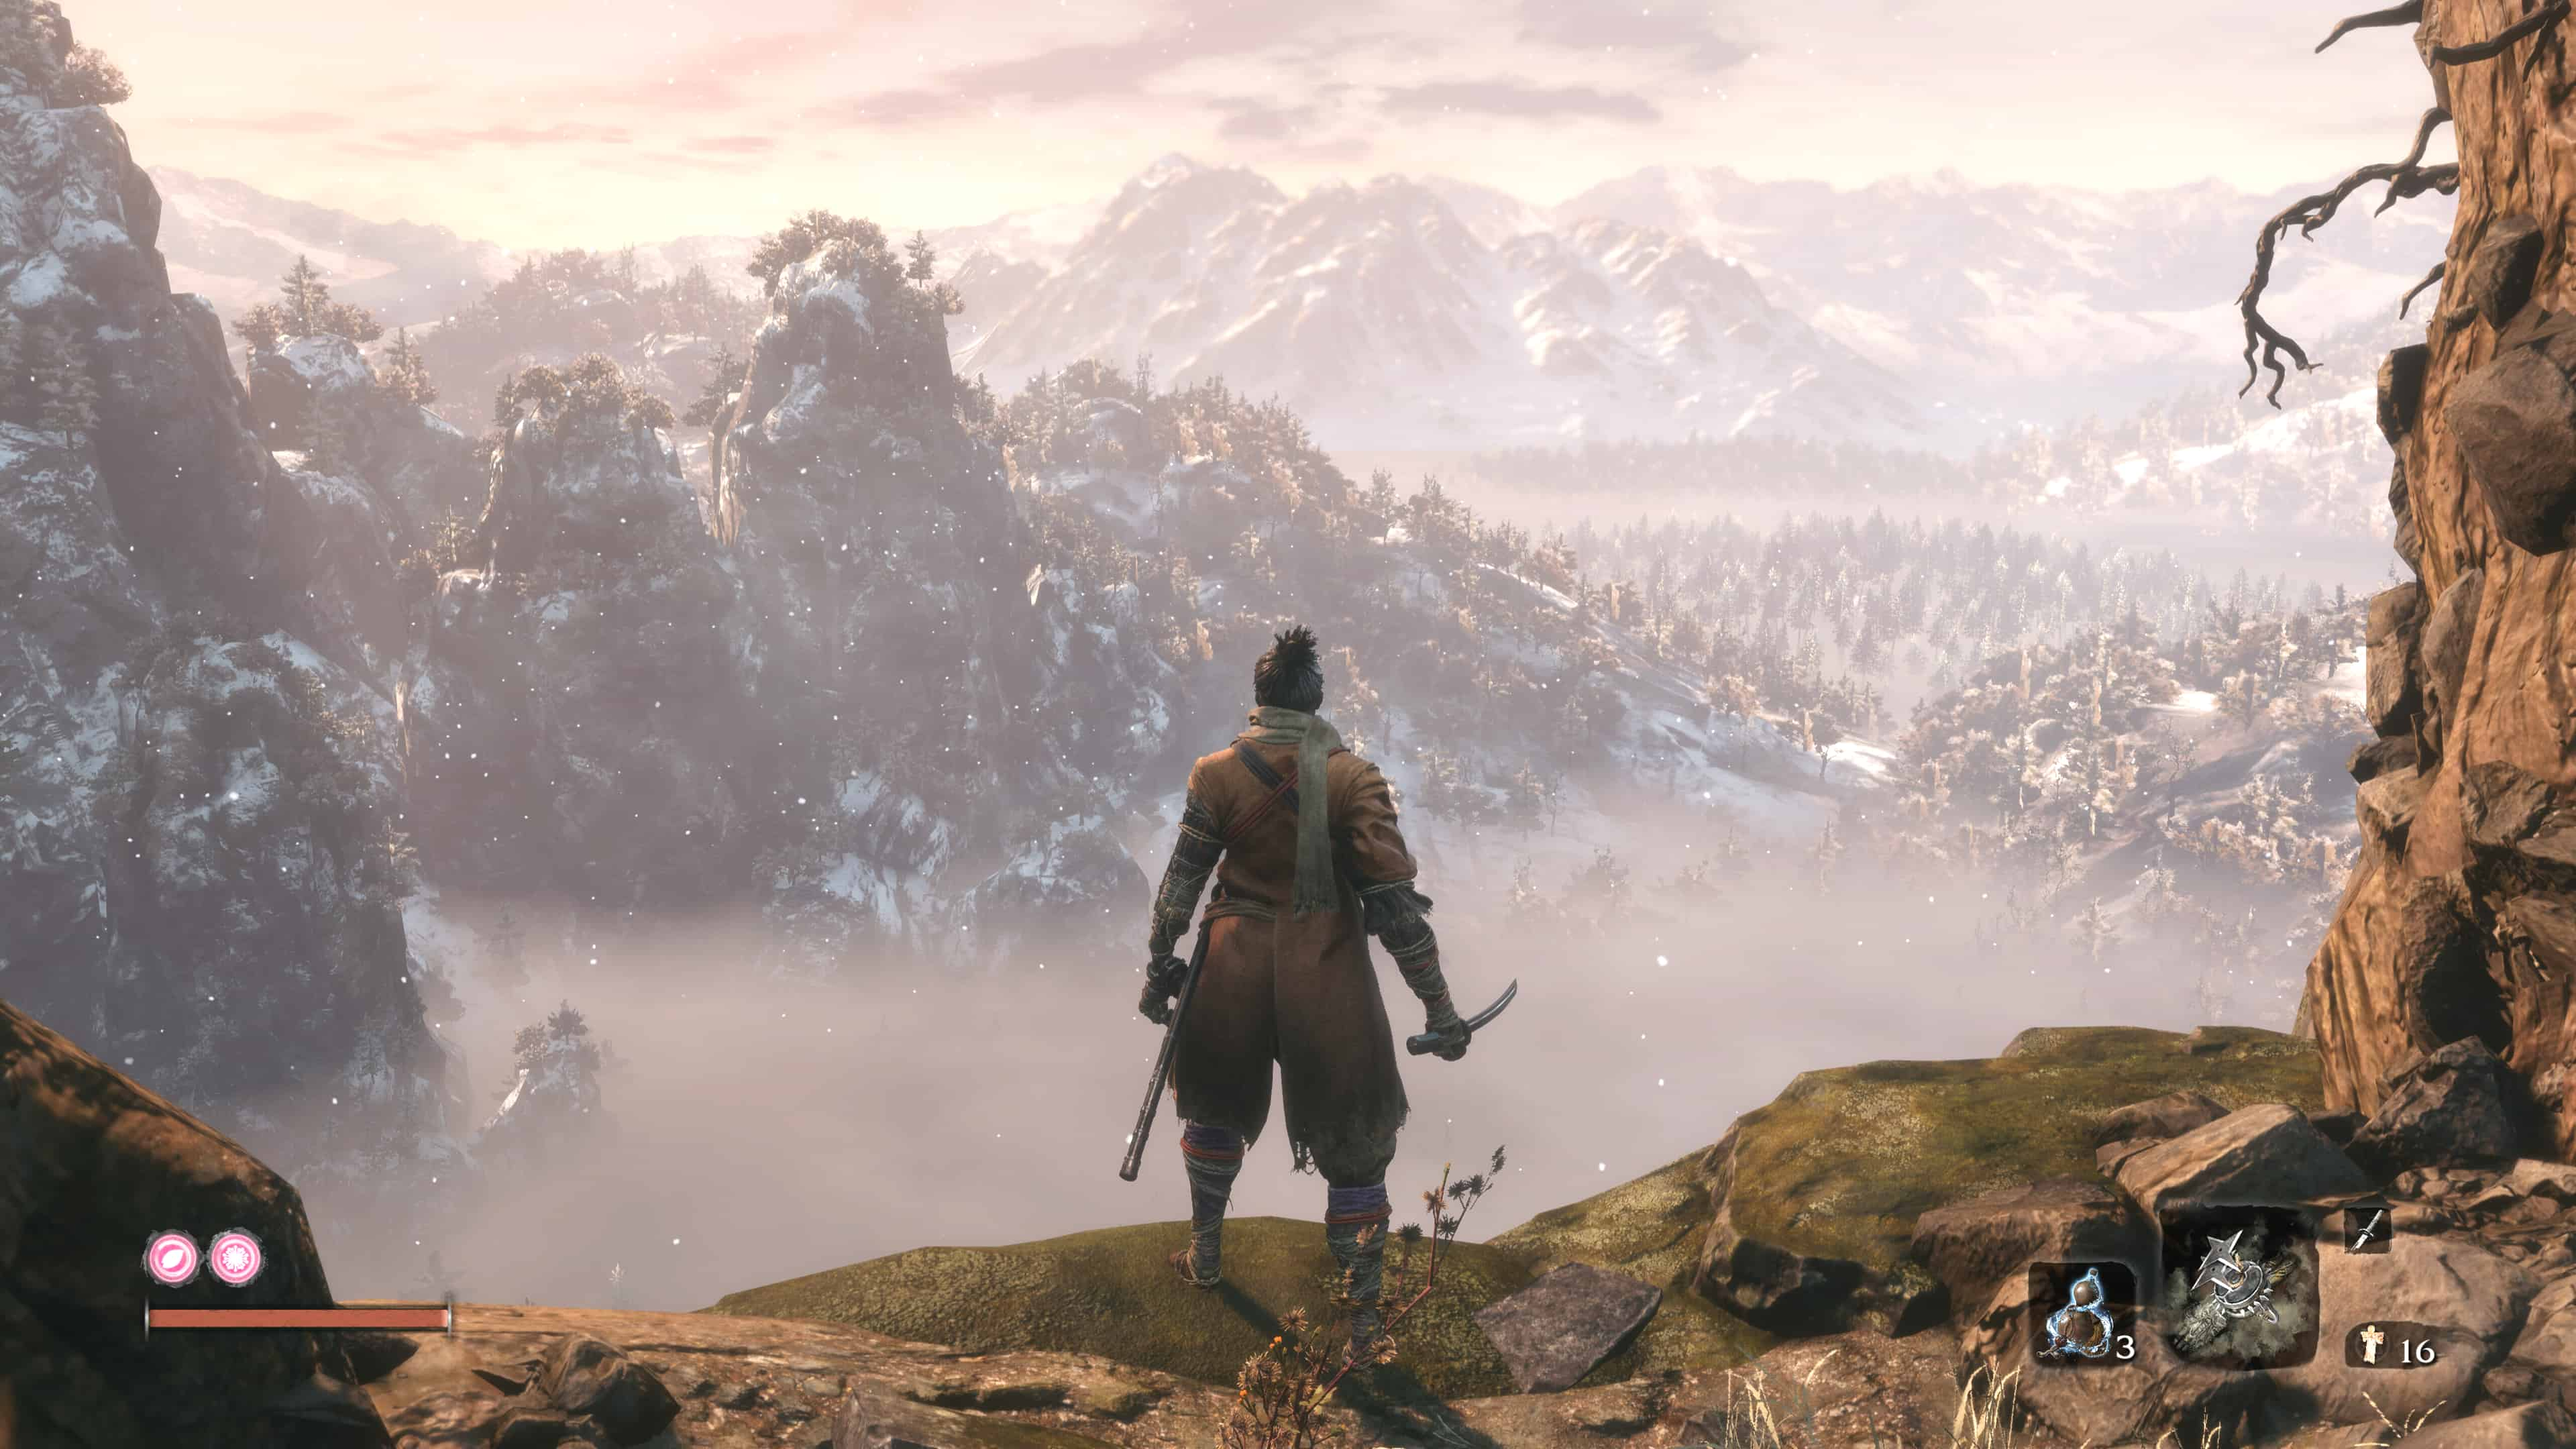 Análisis de Sekiro: Shadows Die Twice - Xbox One 1